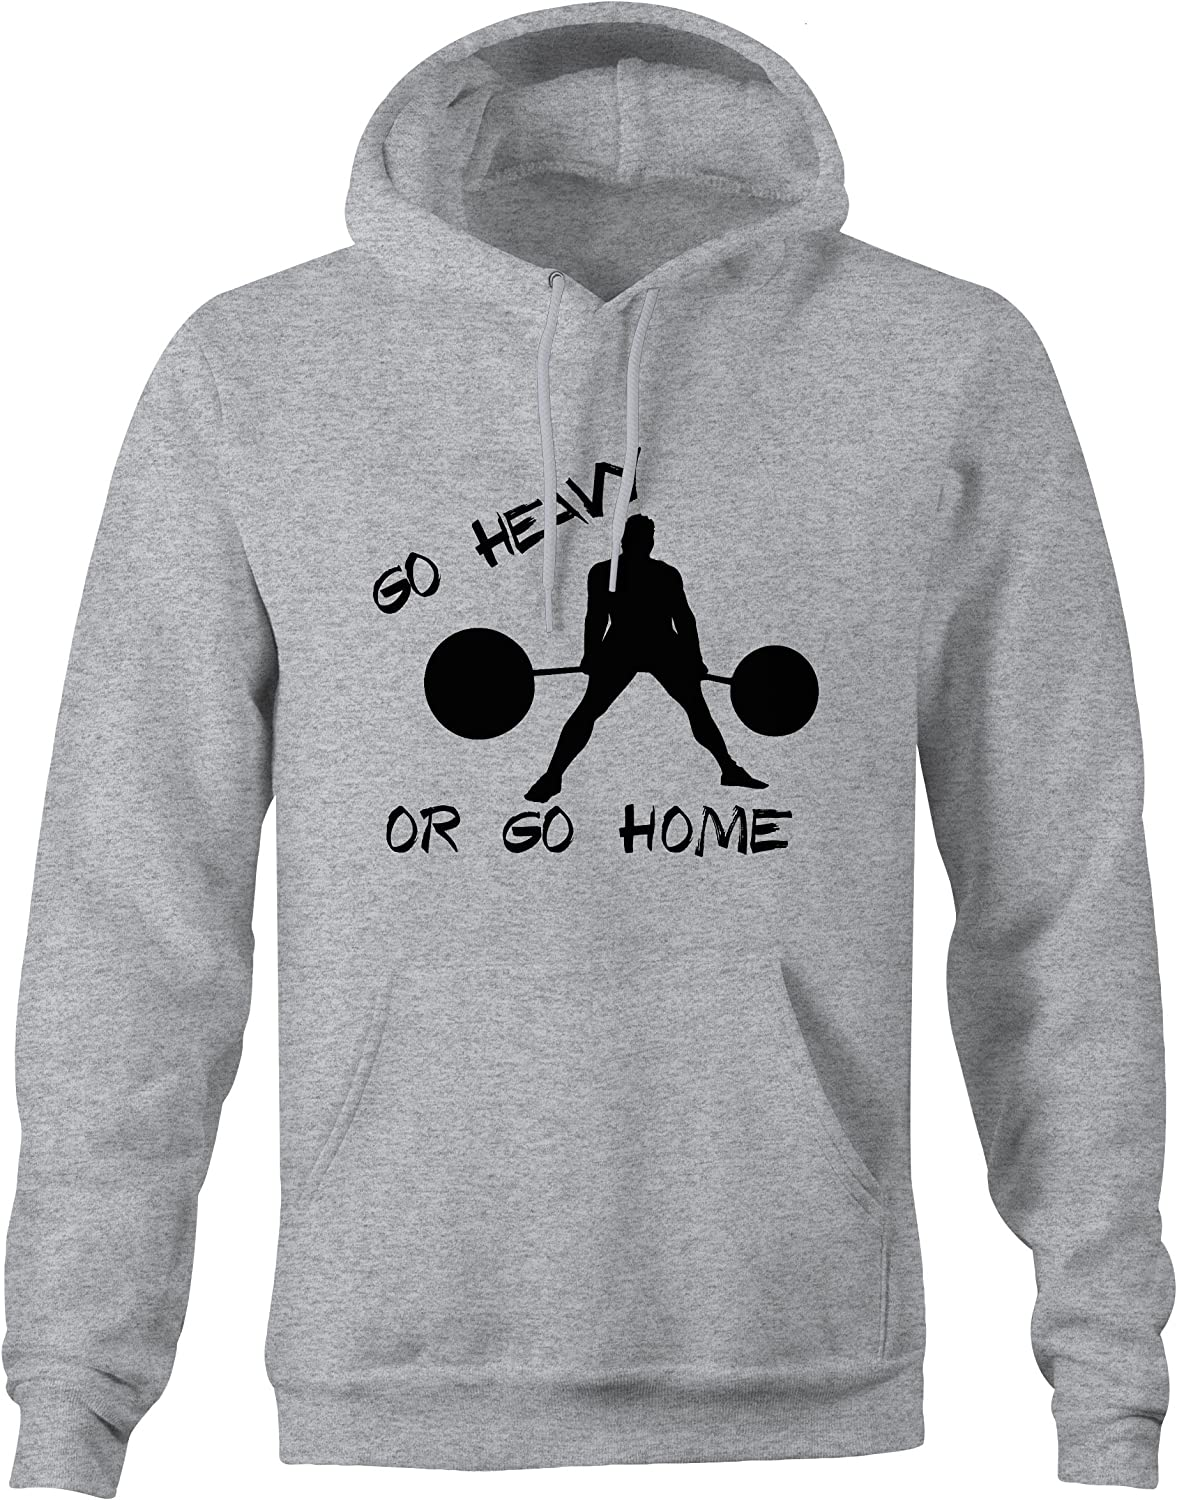 Lifestyle Graphix Go Heavy Or Go Home Gym Powerlifting Training Workout Hoodies for Men